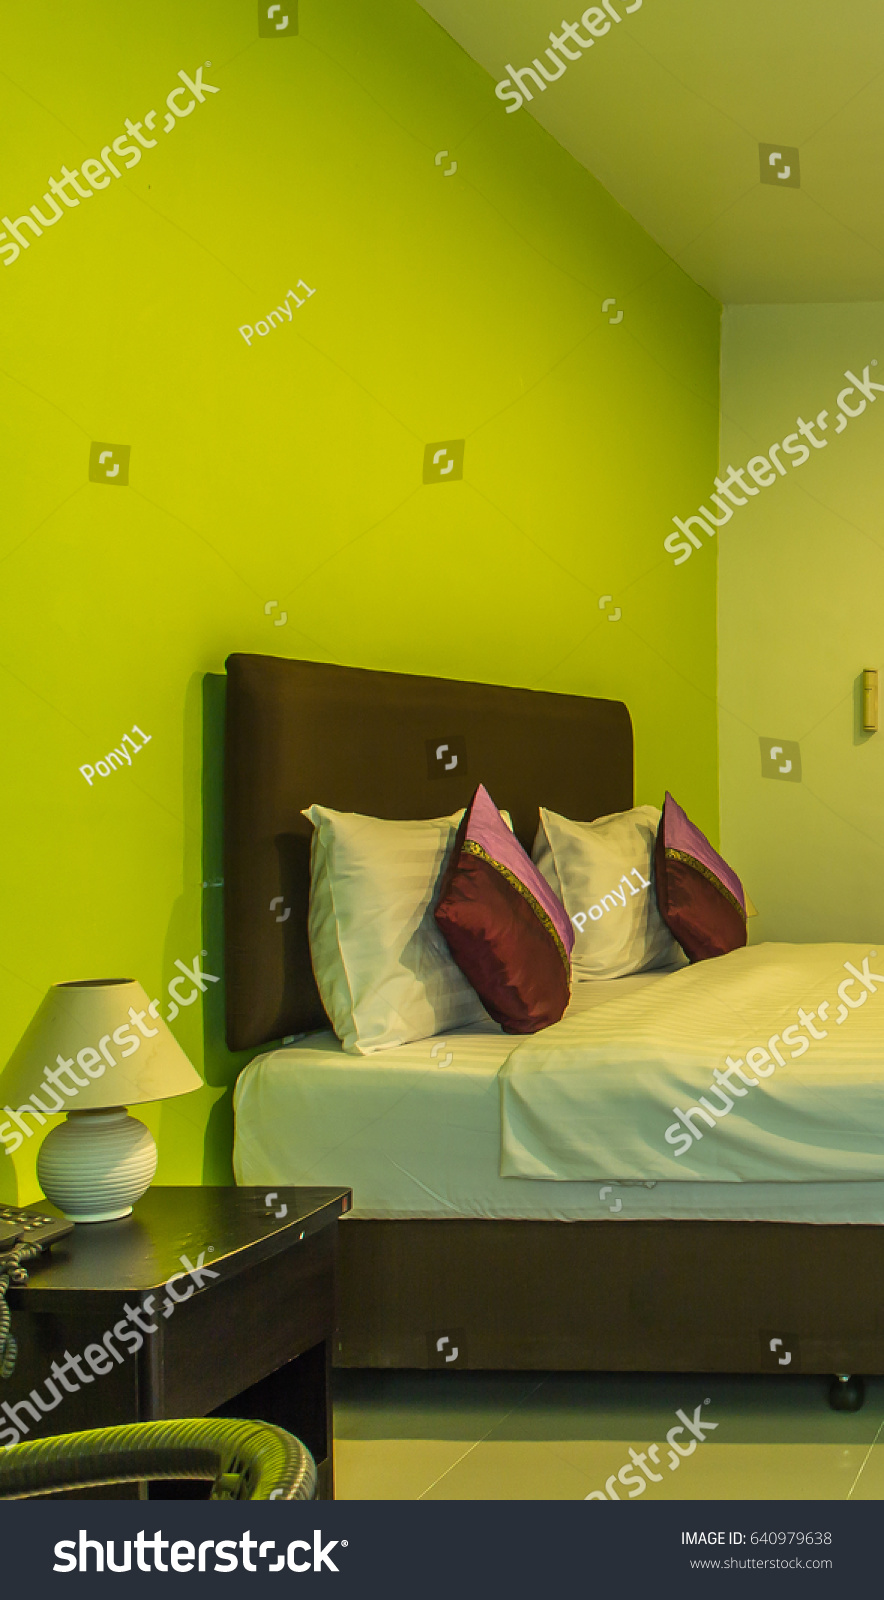 Green Color Wall Modern Room Hotel Stock Photo (Royalty Free ...